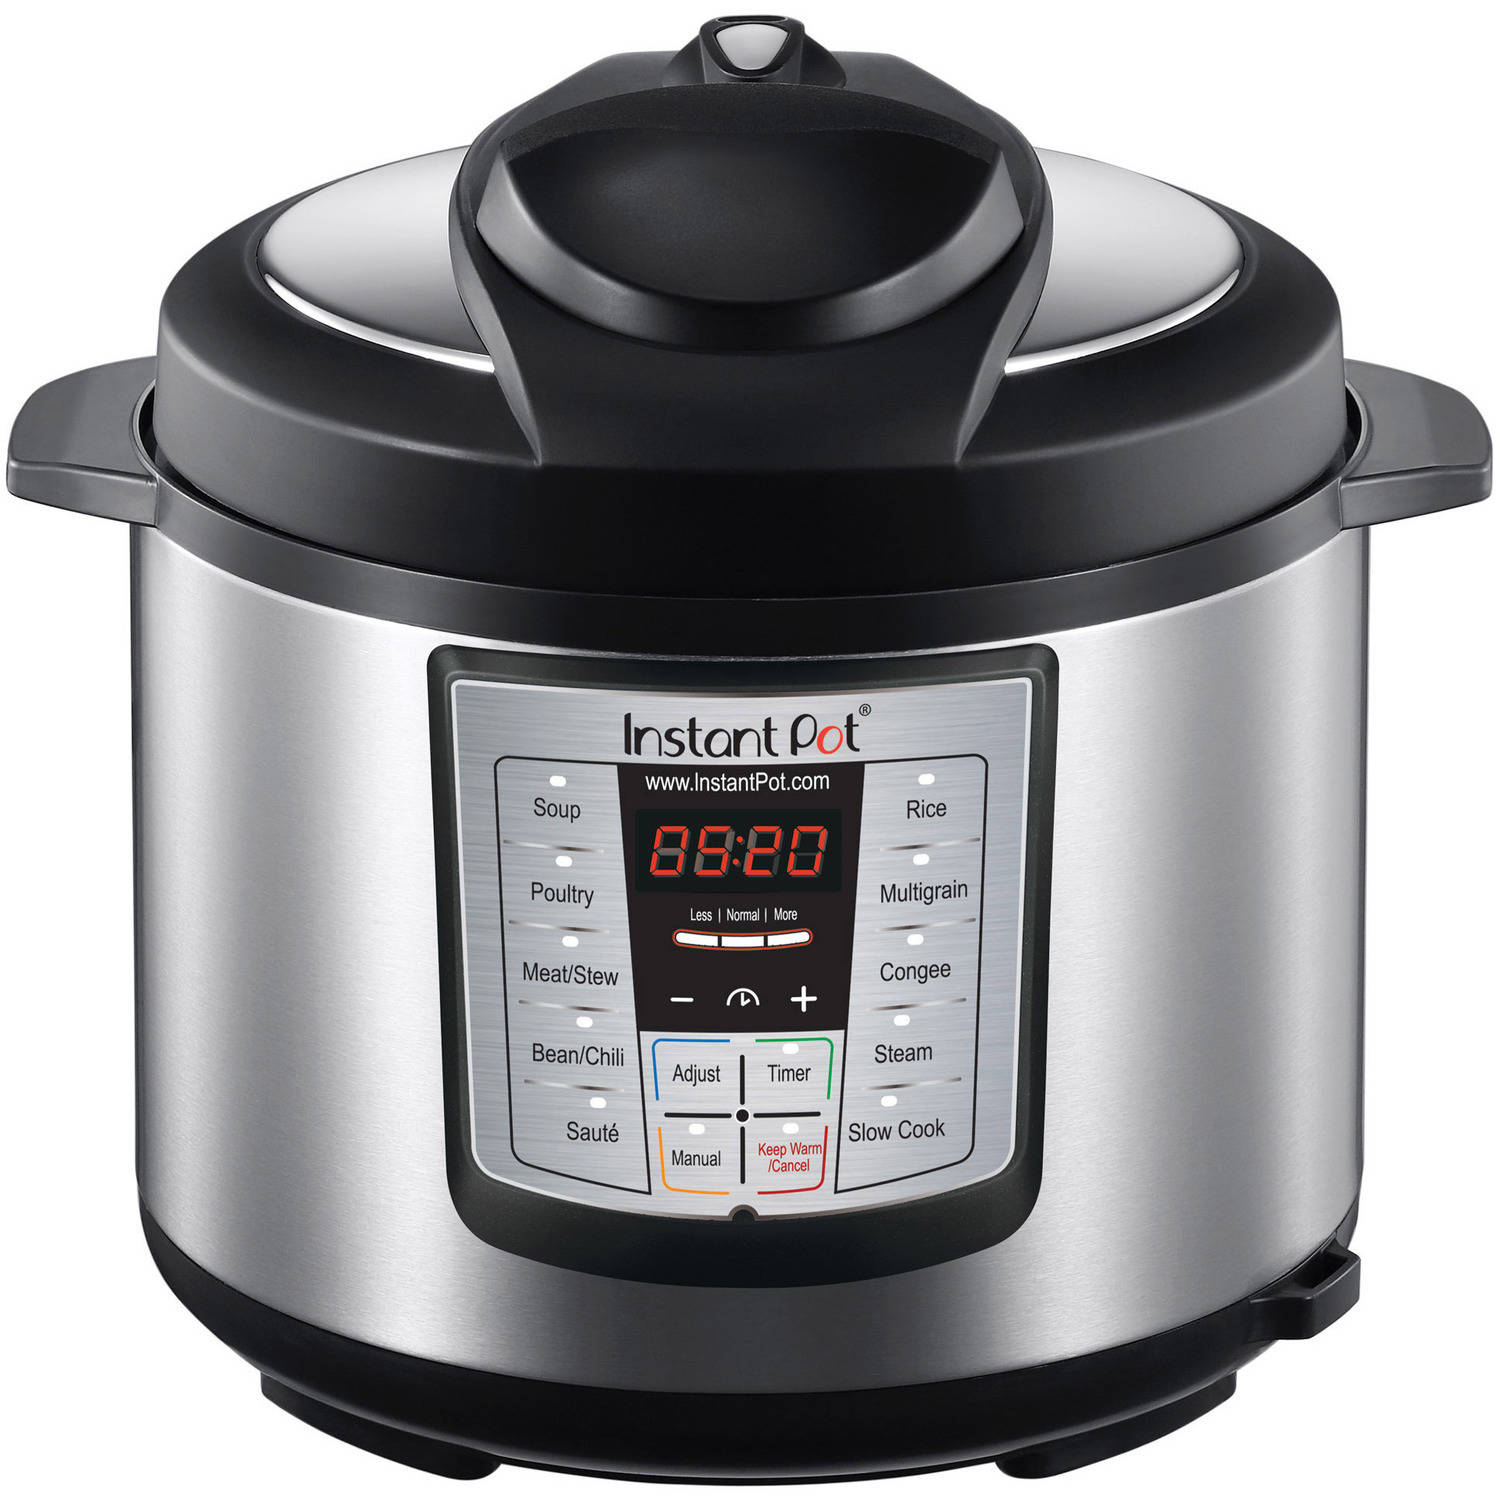 Instant Pot IP-LUX60-ENW Stainless Steel 6-in-1 Pressure Cooker